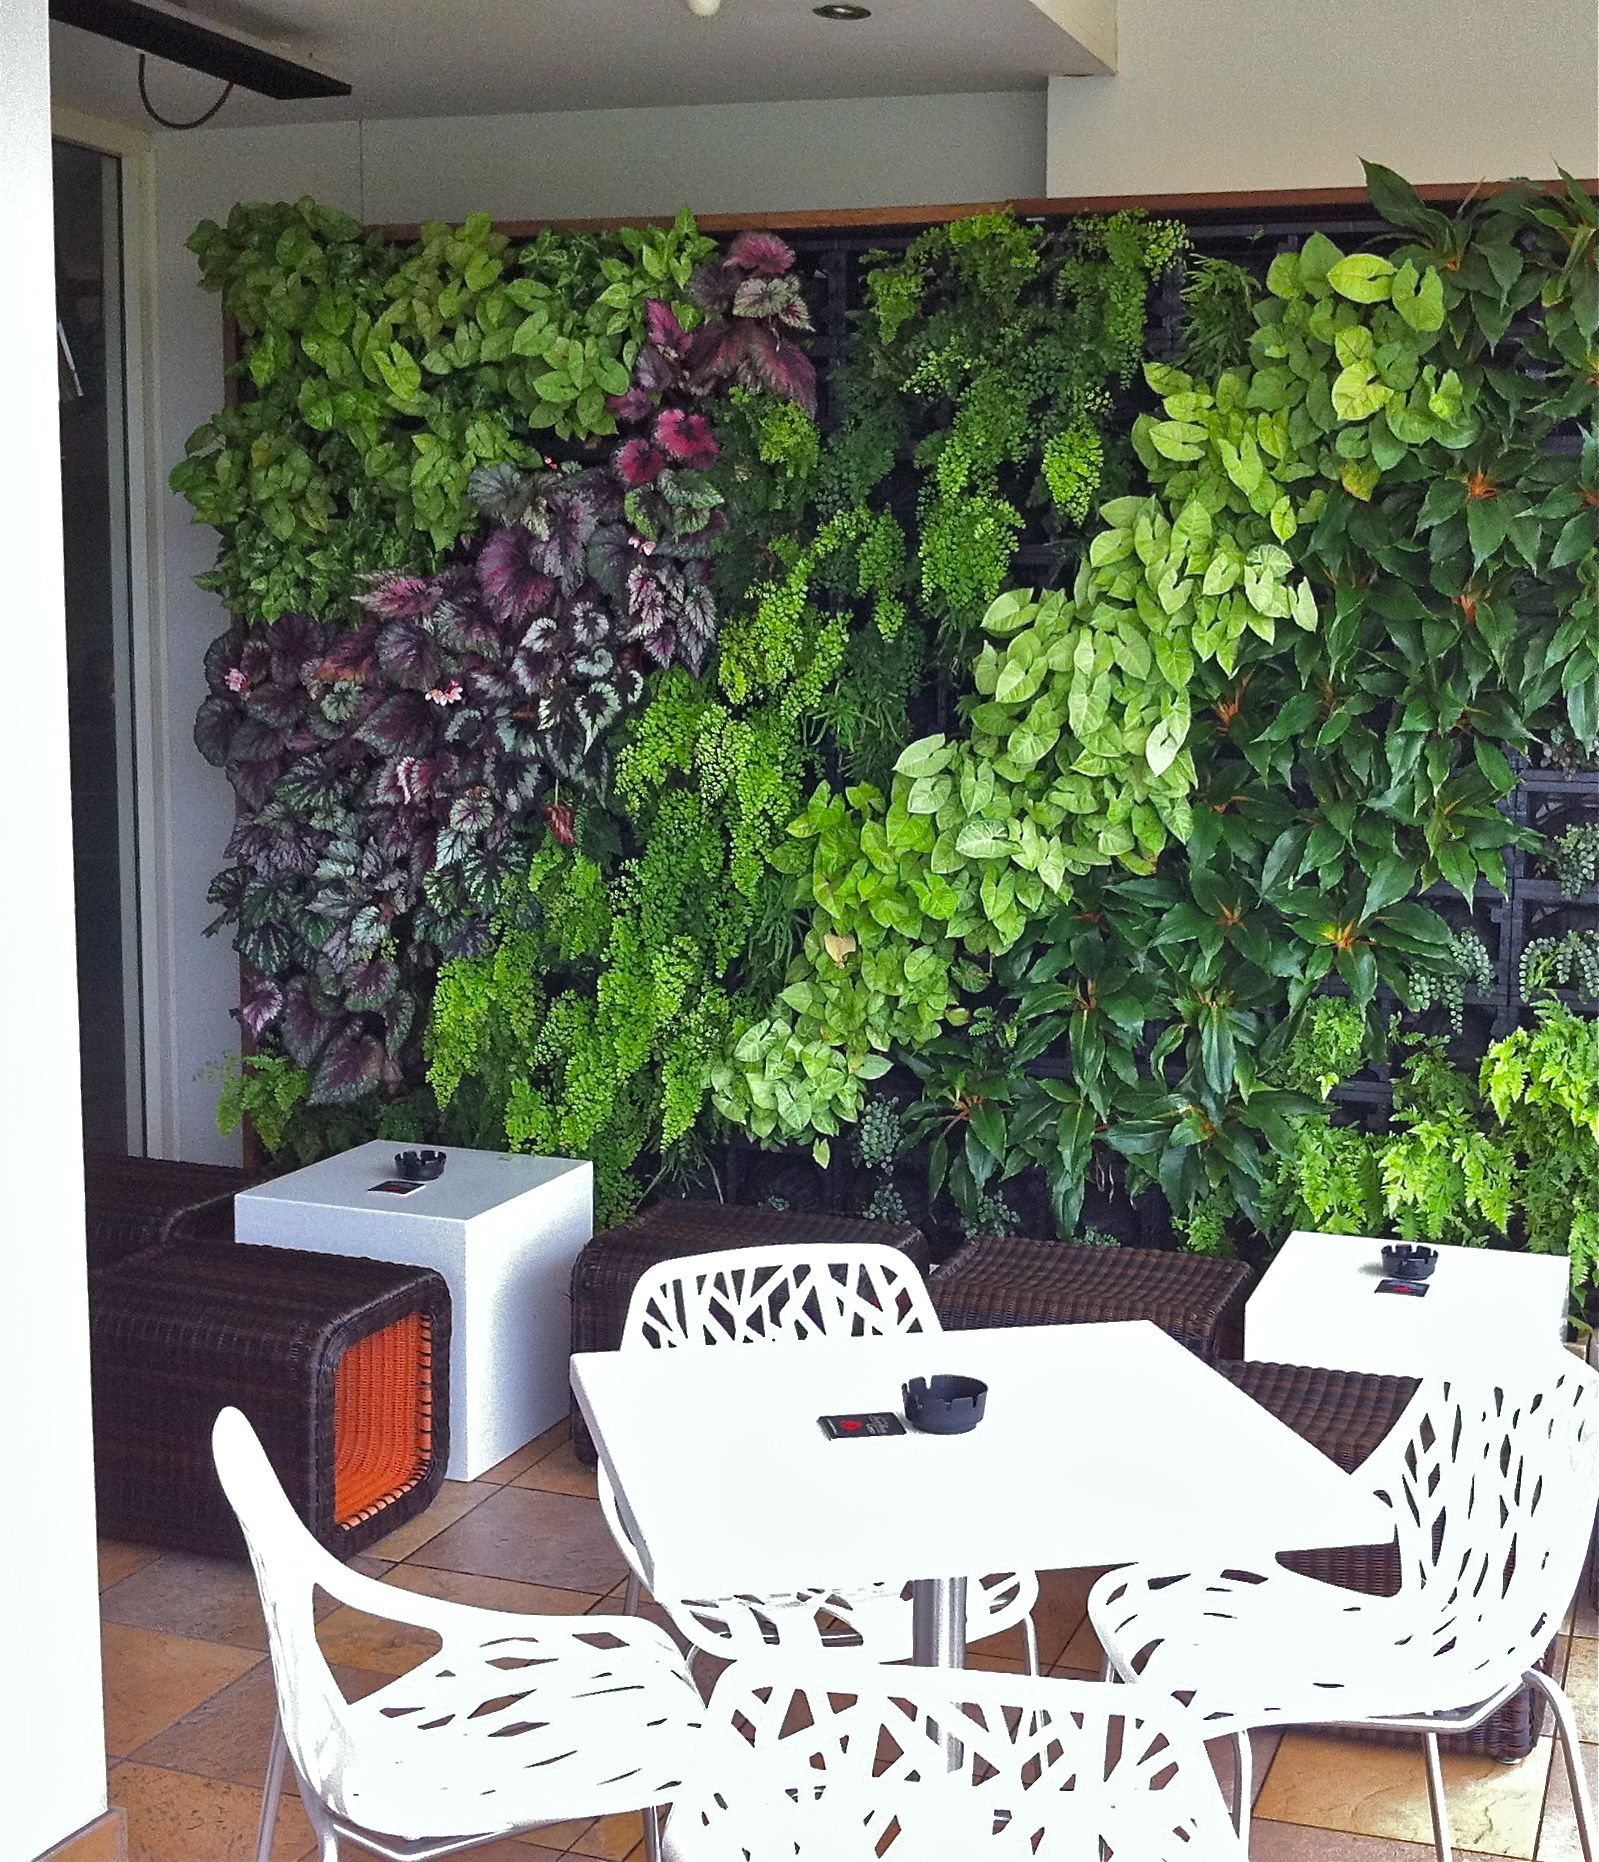 Vertical Herb Garden Ideas: Green Wall Garden, Green Roof Garden & Vertical Garden